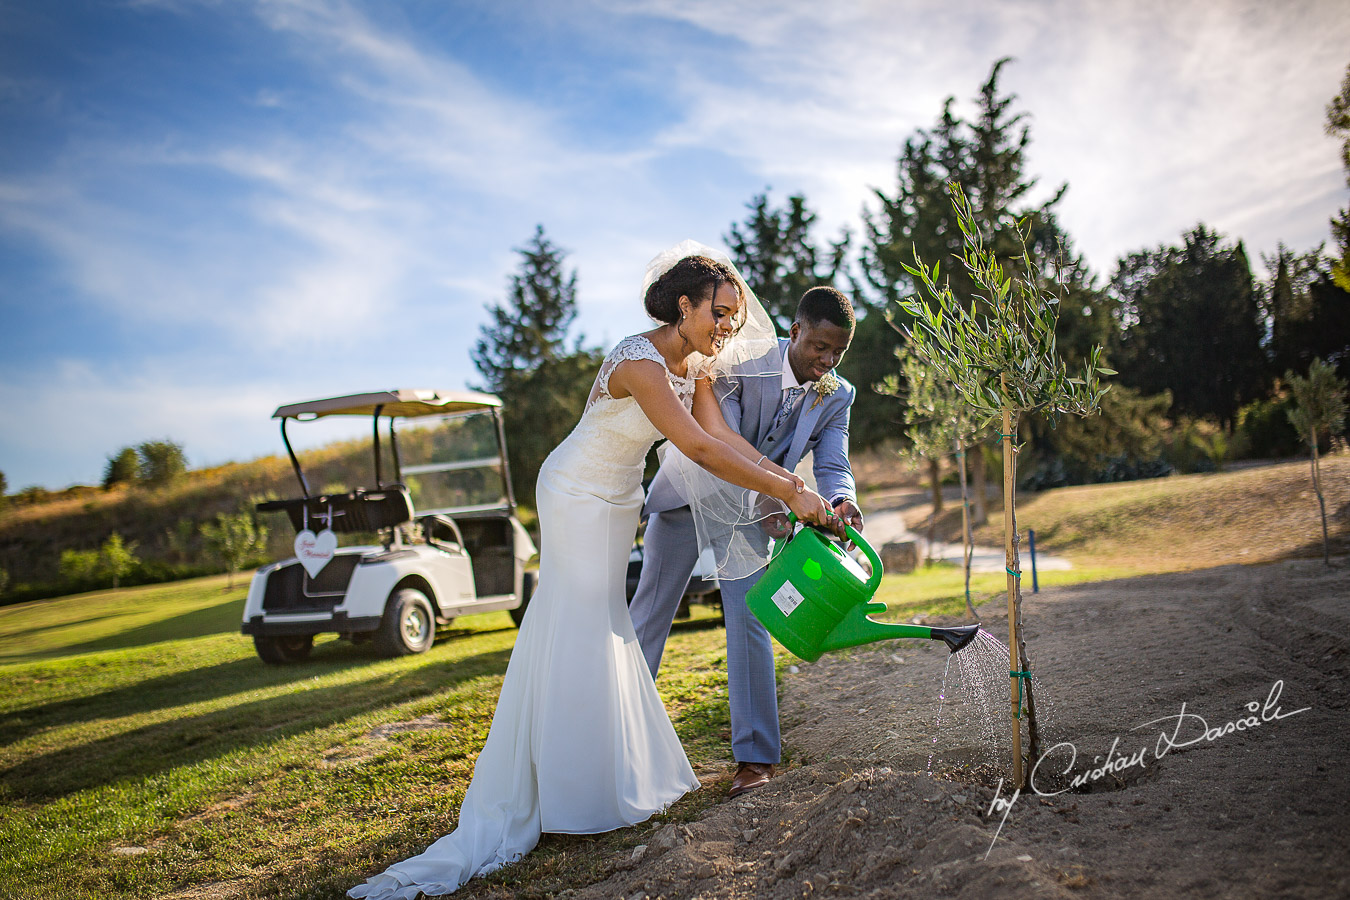 Bride and Groom planting an olive tree, moments captured at a wedding at Minthis Hills in Cyprus, by Cristian Dascalu.